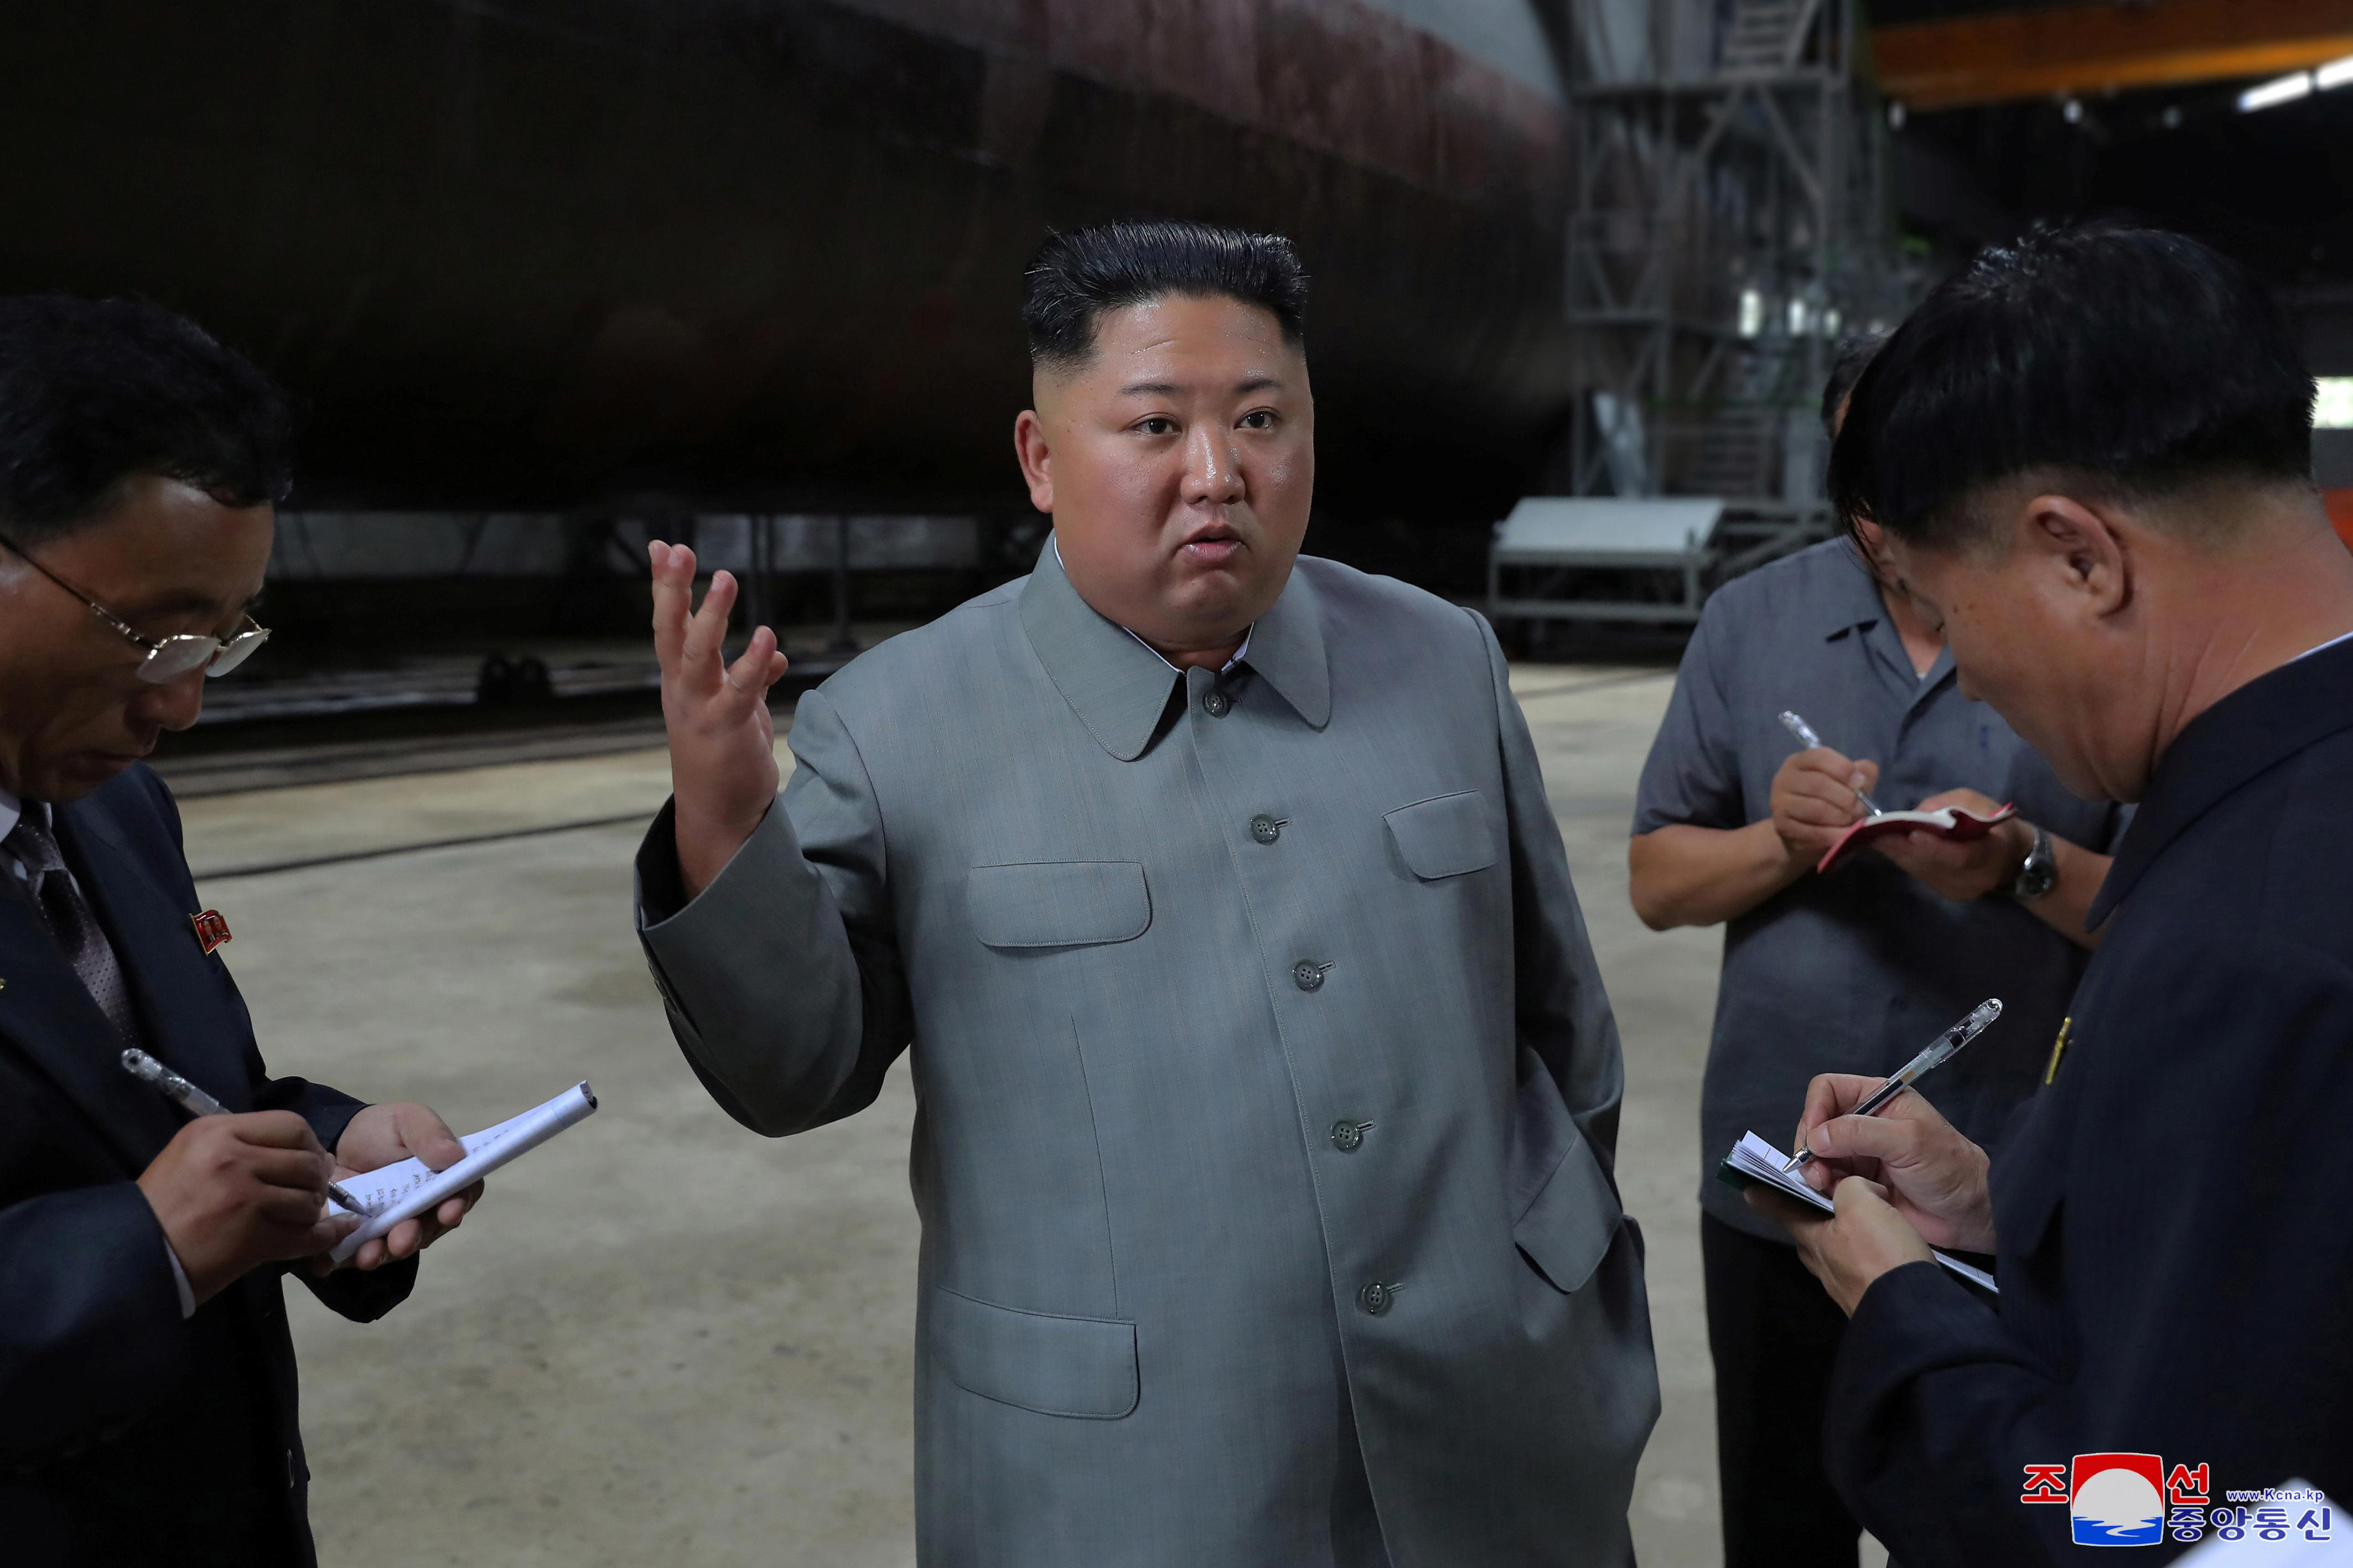 North Korea's Kim inspects new submarine, signals possible ballistic missile development